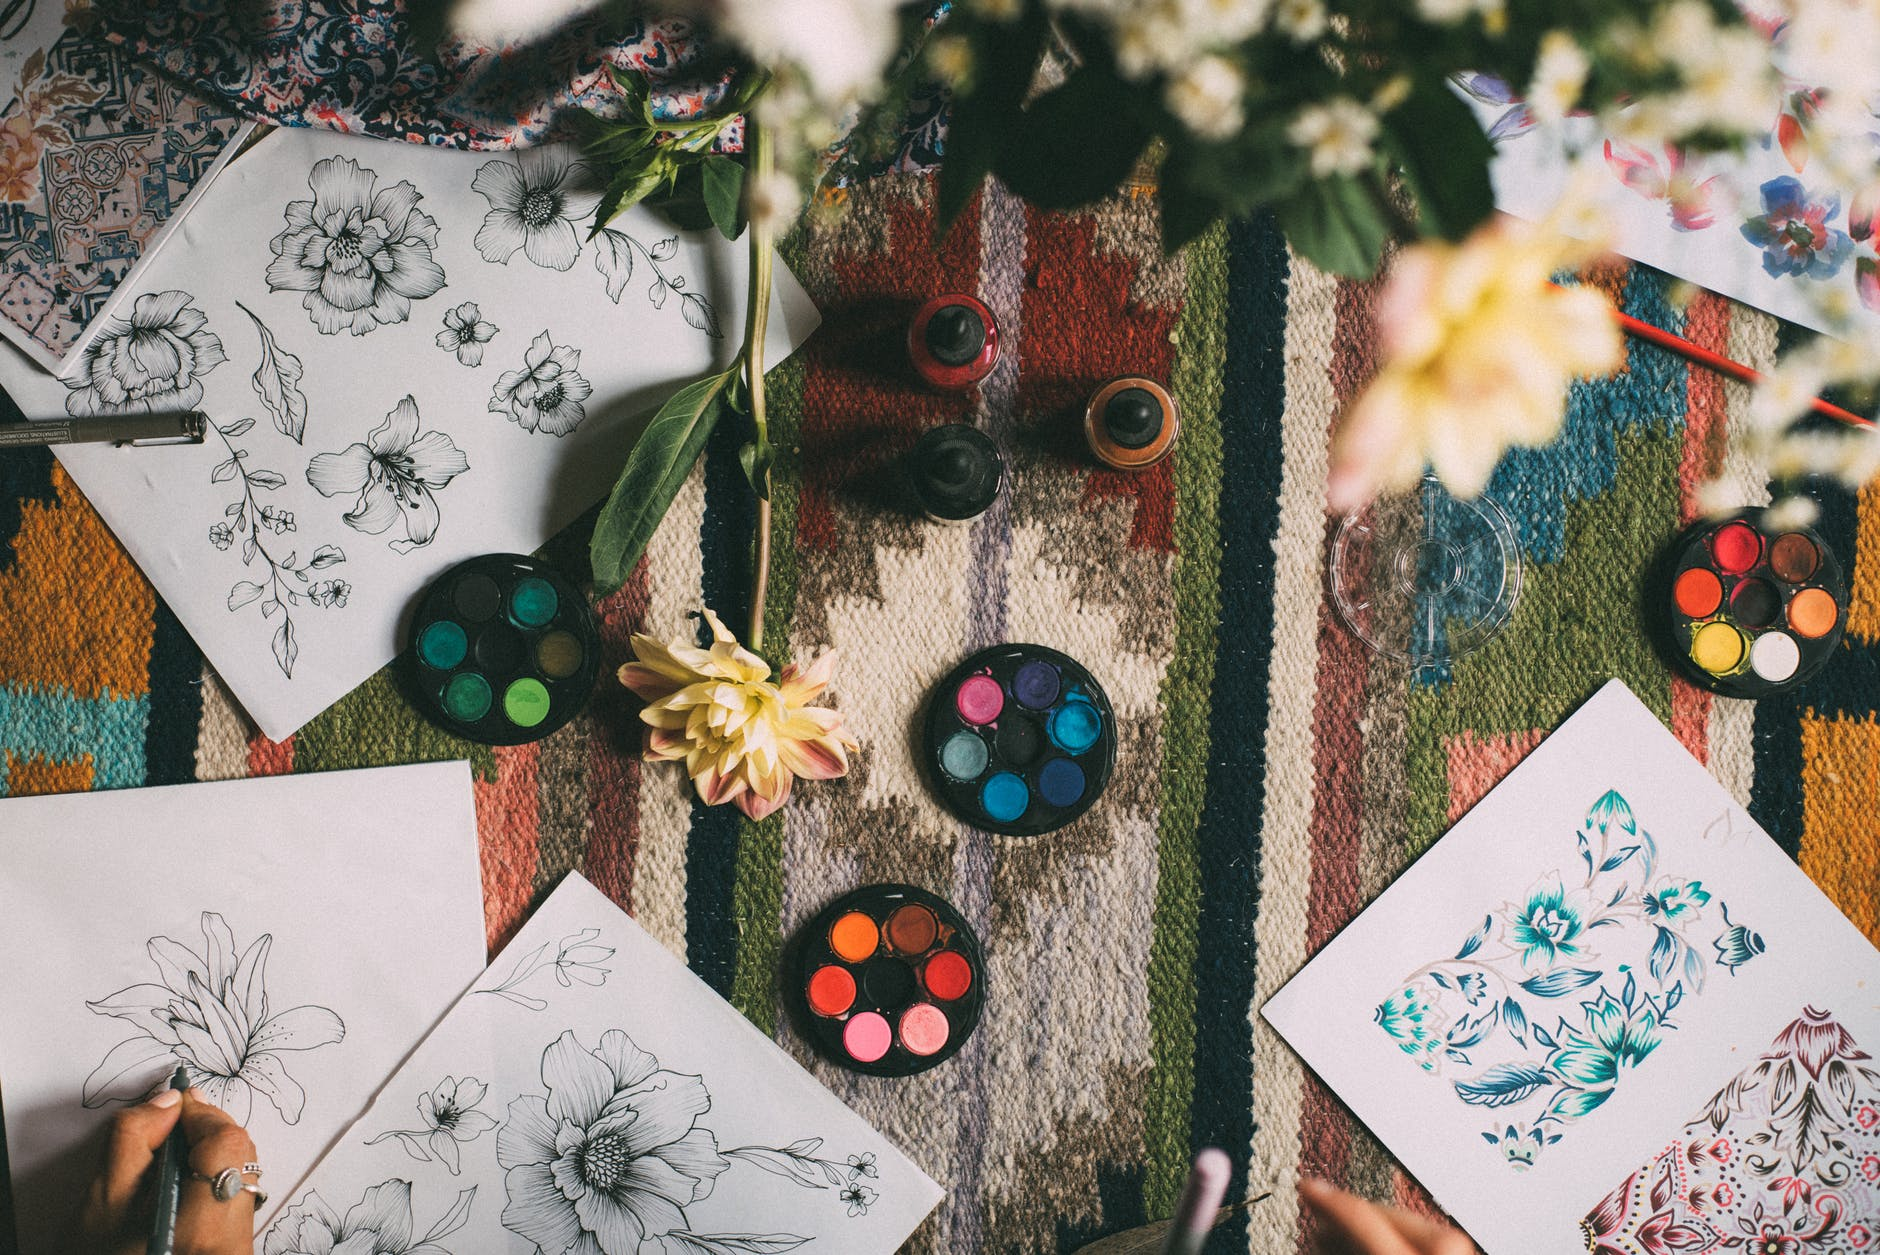 several drawings of flowers and paints layed out on a colourful table